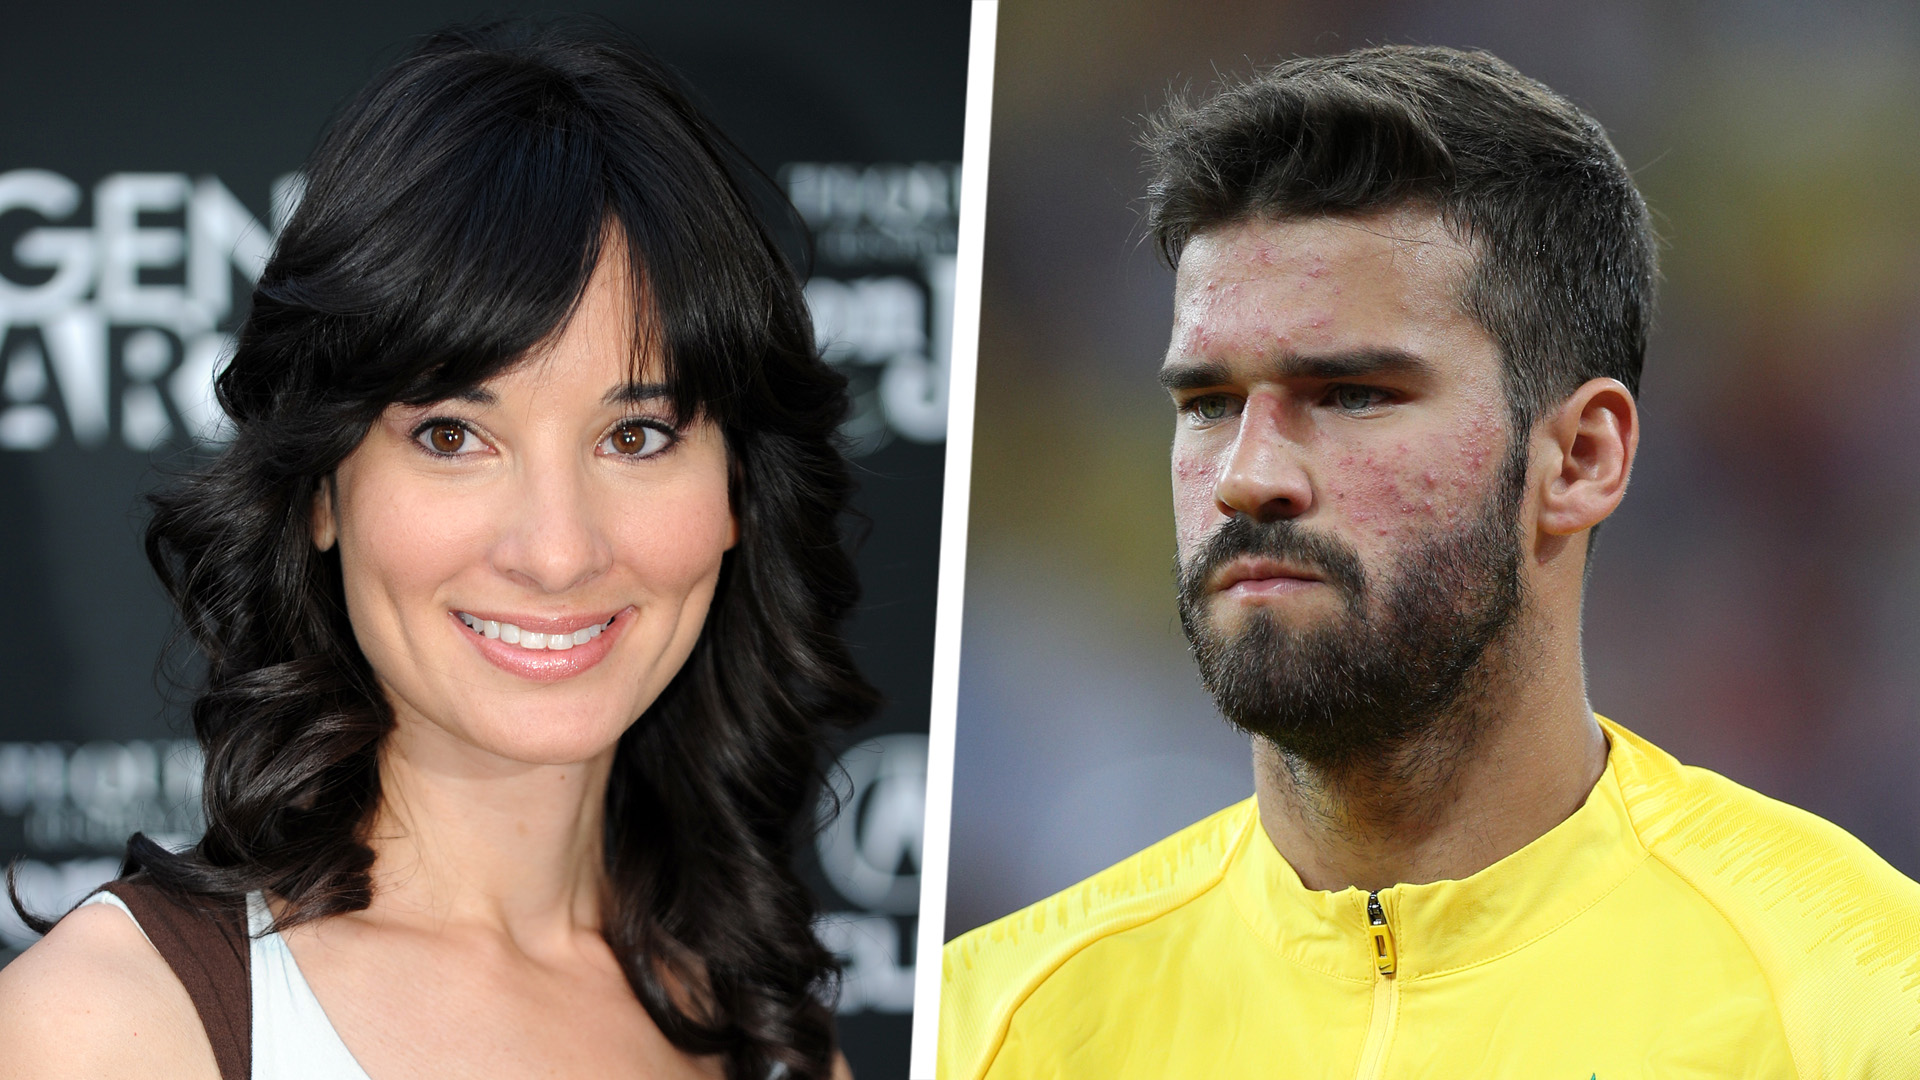 Alison Rey i'm joining liverpool!' - comedian alison becker teases